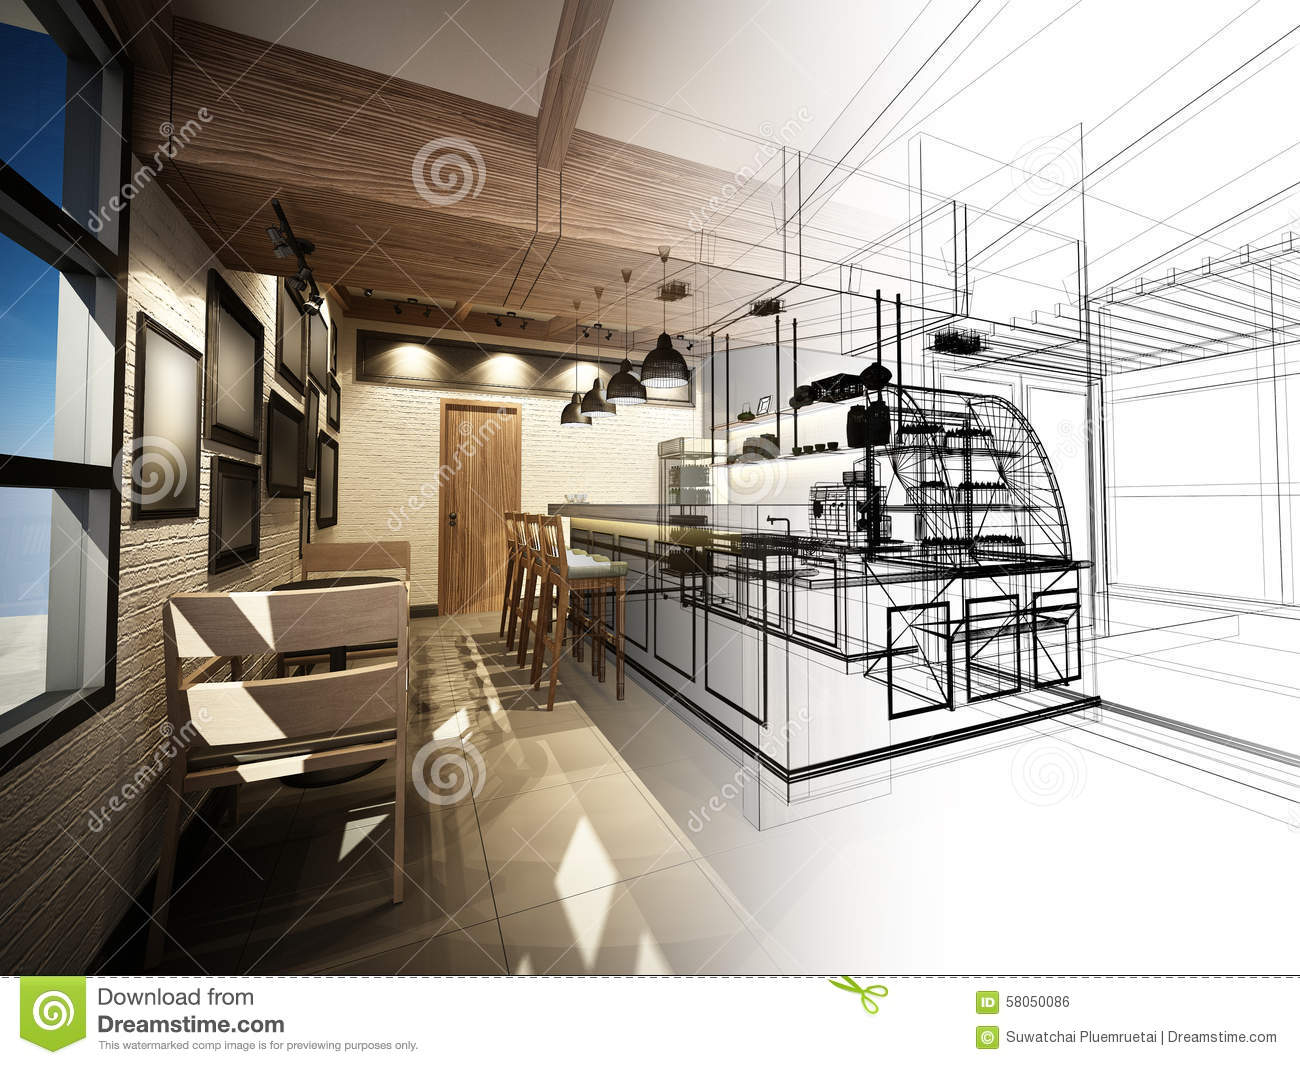 Sketch Design Of Coffee Shop Stock Illustration - Illustration Of Furniture Architecture 58050086